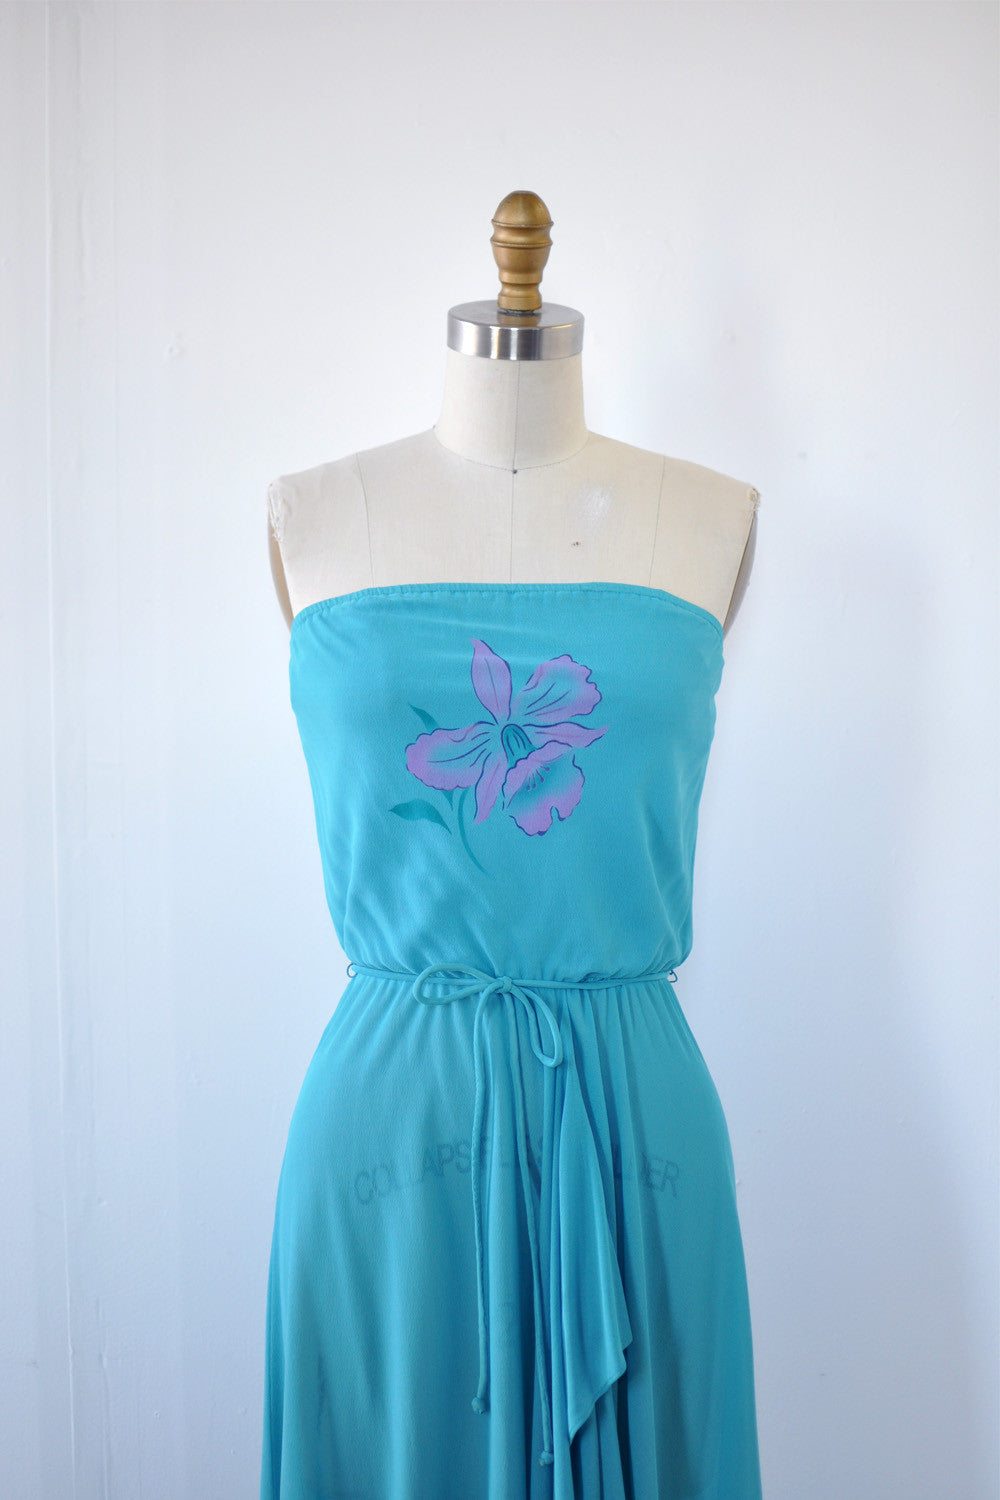 Violet Daffodil Sheer Dress XS/S